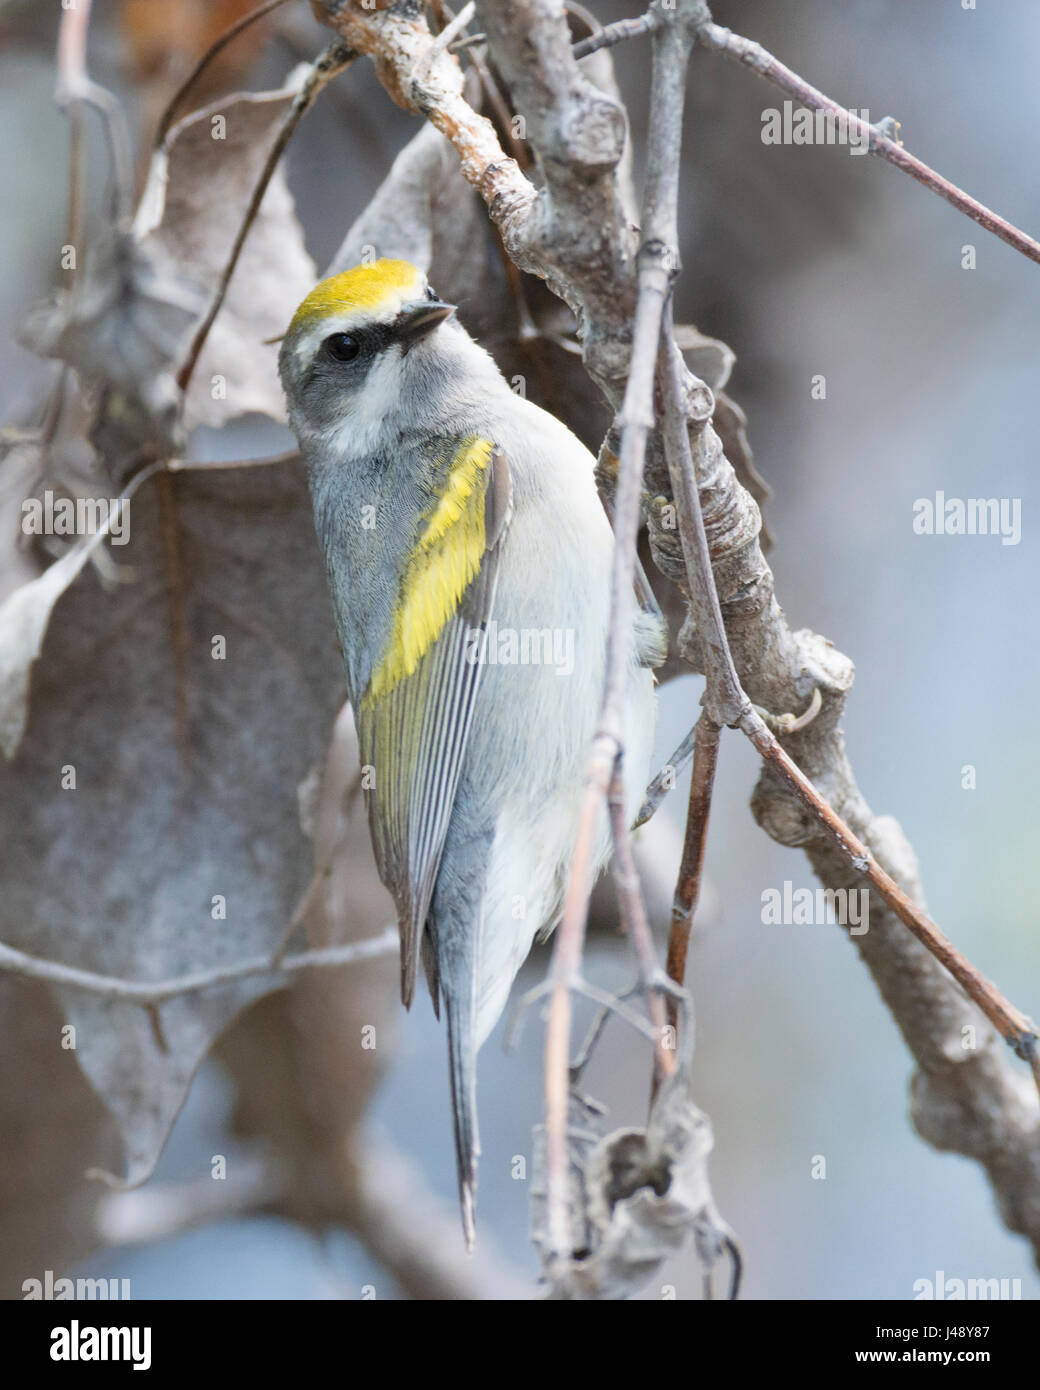 Rare Golden-winged Warbler poses close up at Magee Marsh - Stock Image